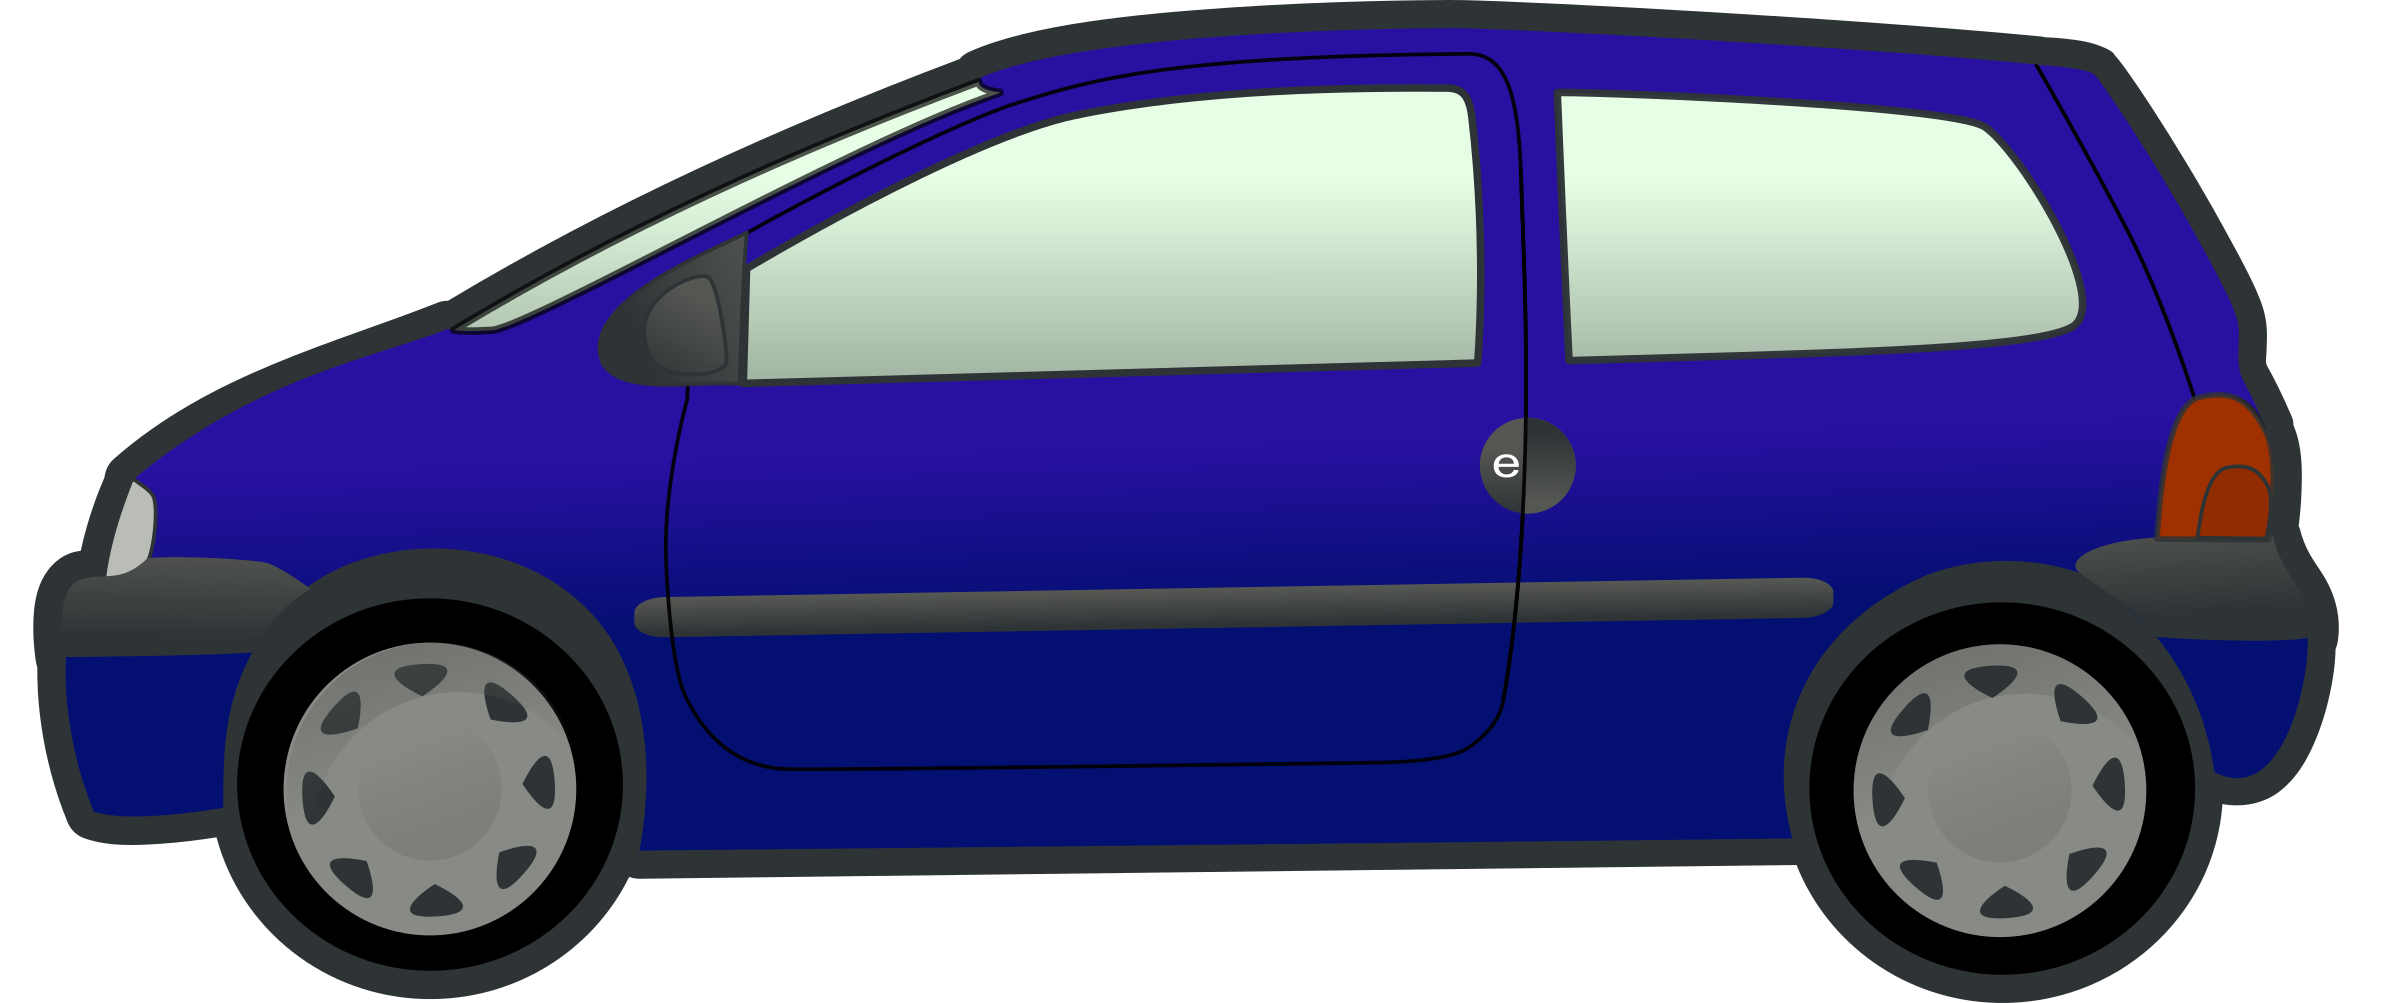 image library stock  collection of blue. Minivan clipart.